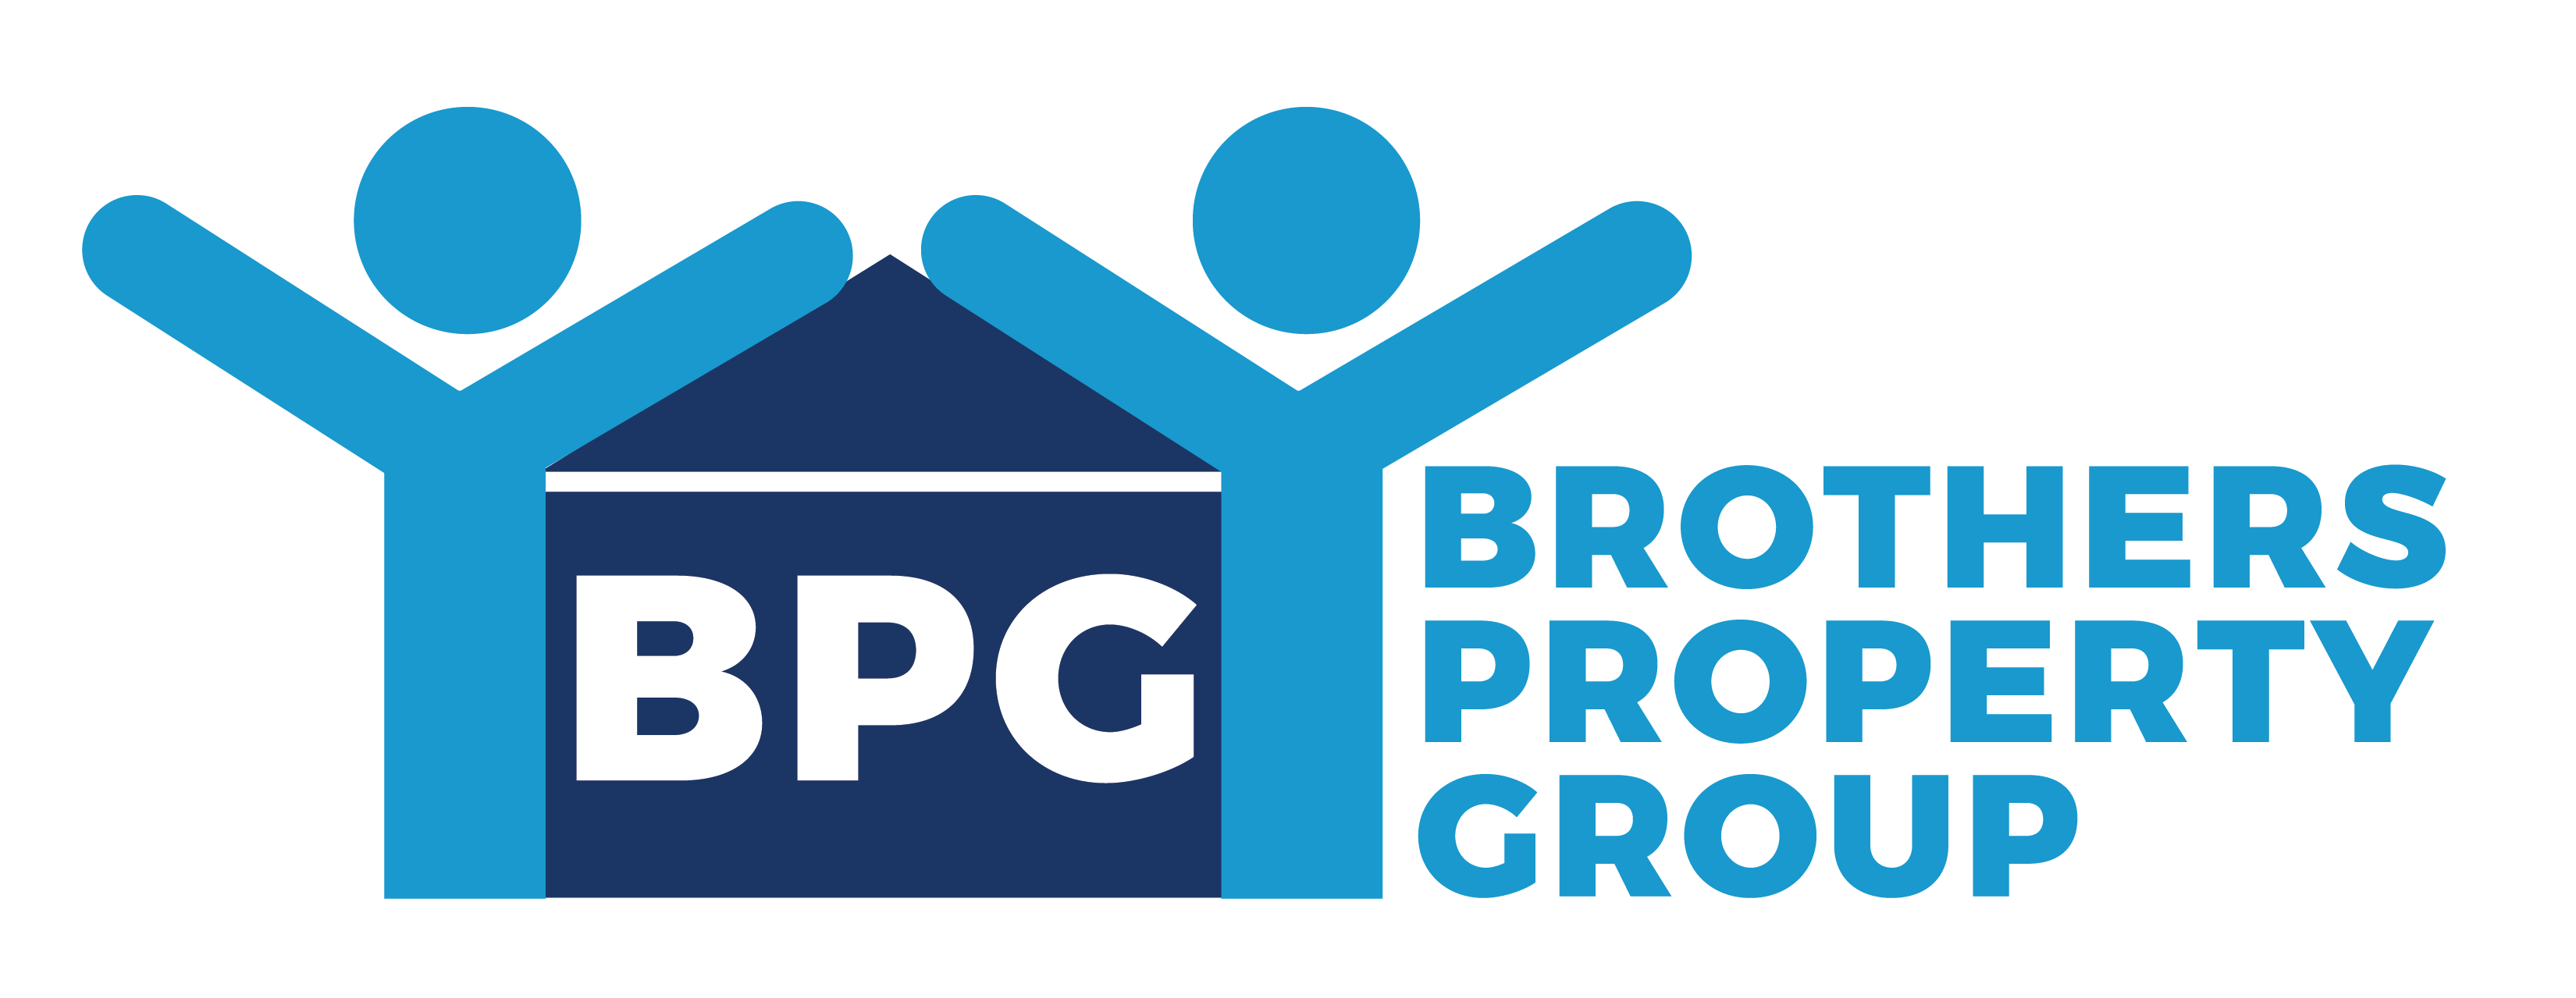 Brothers Property Group